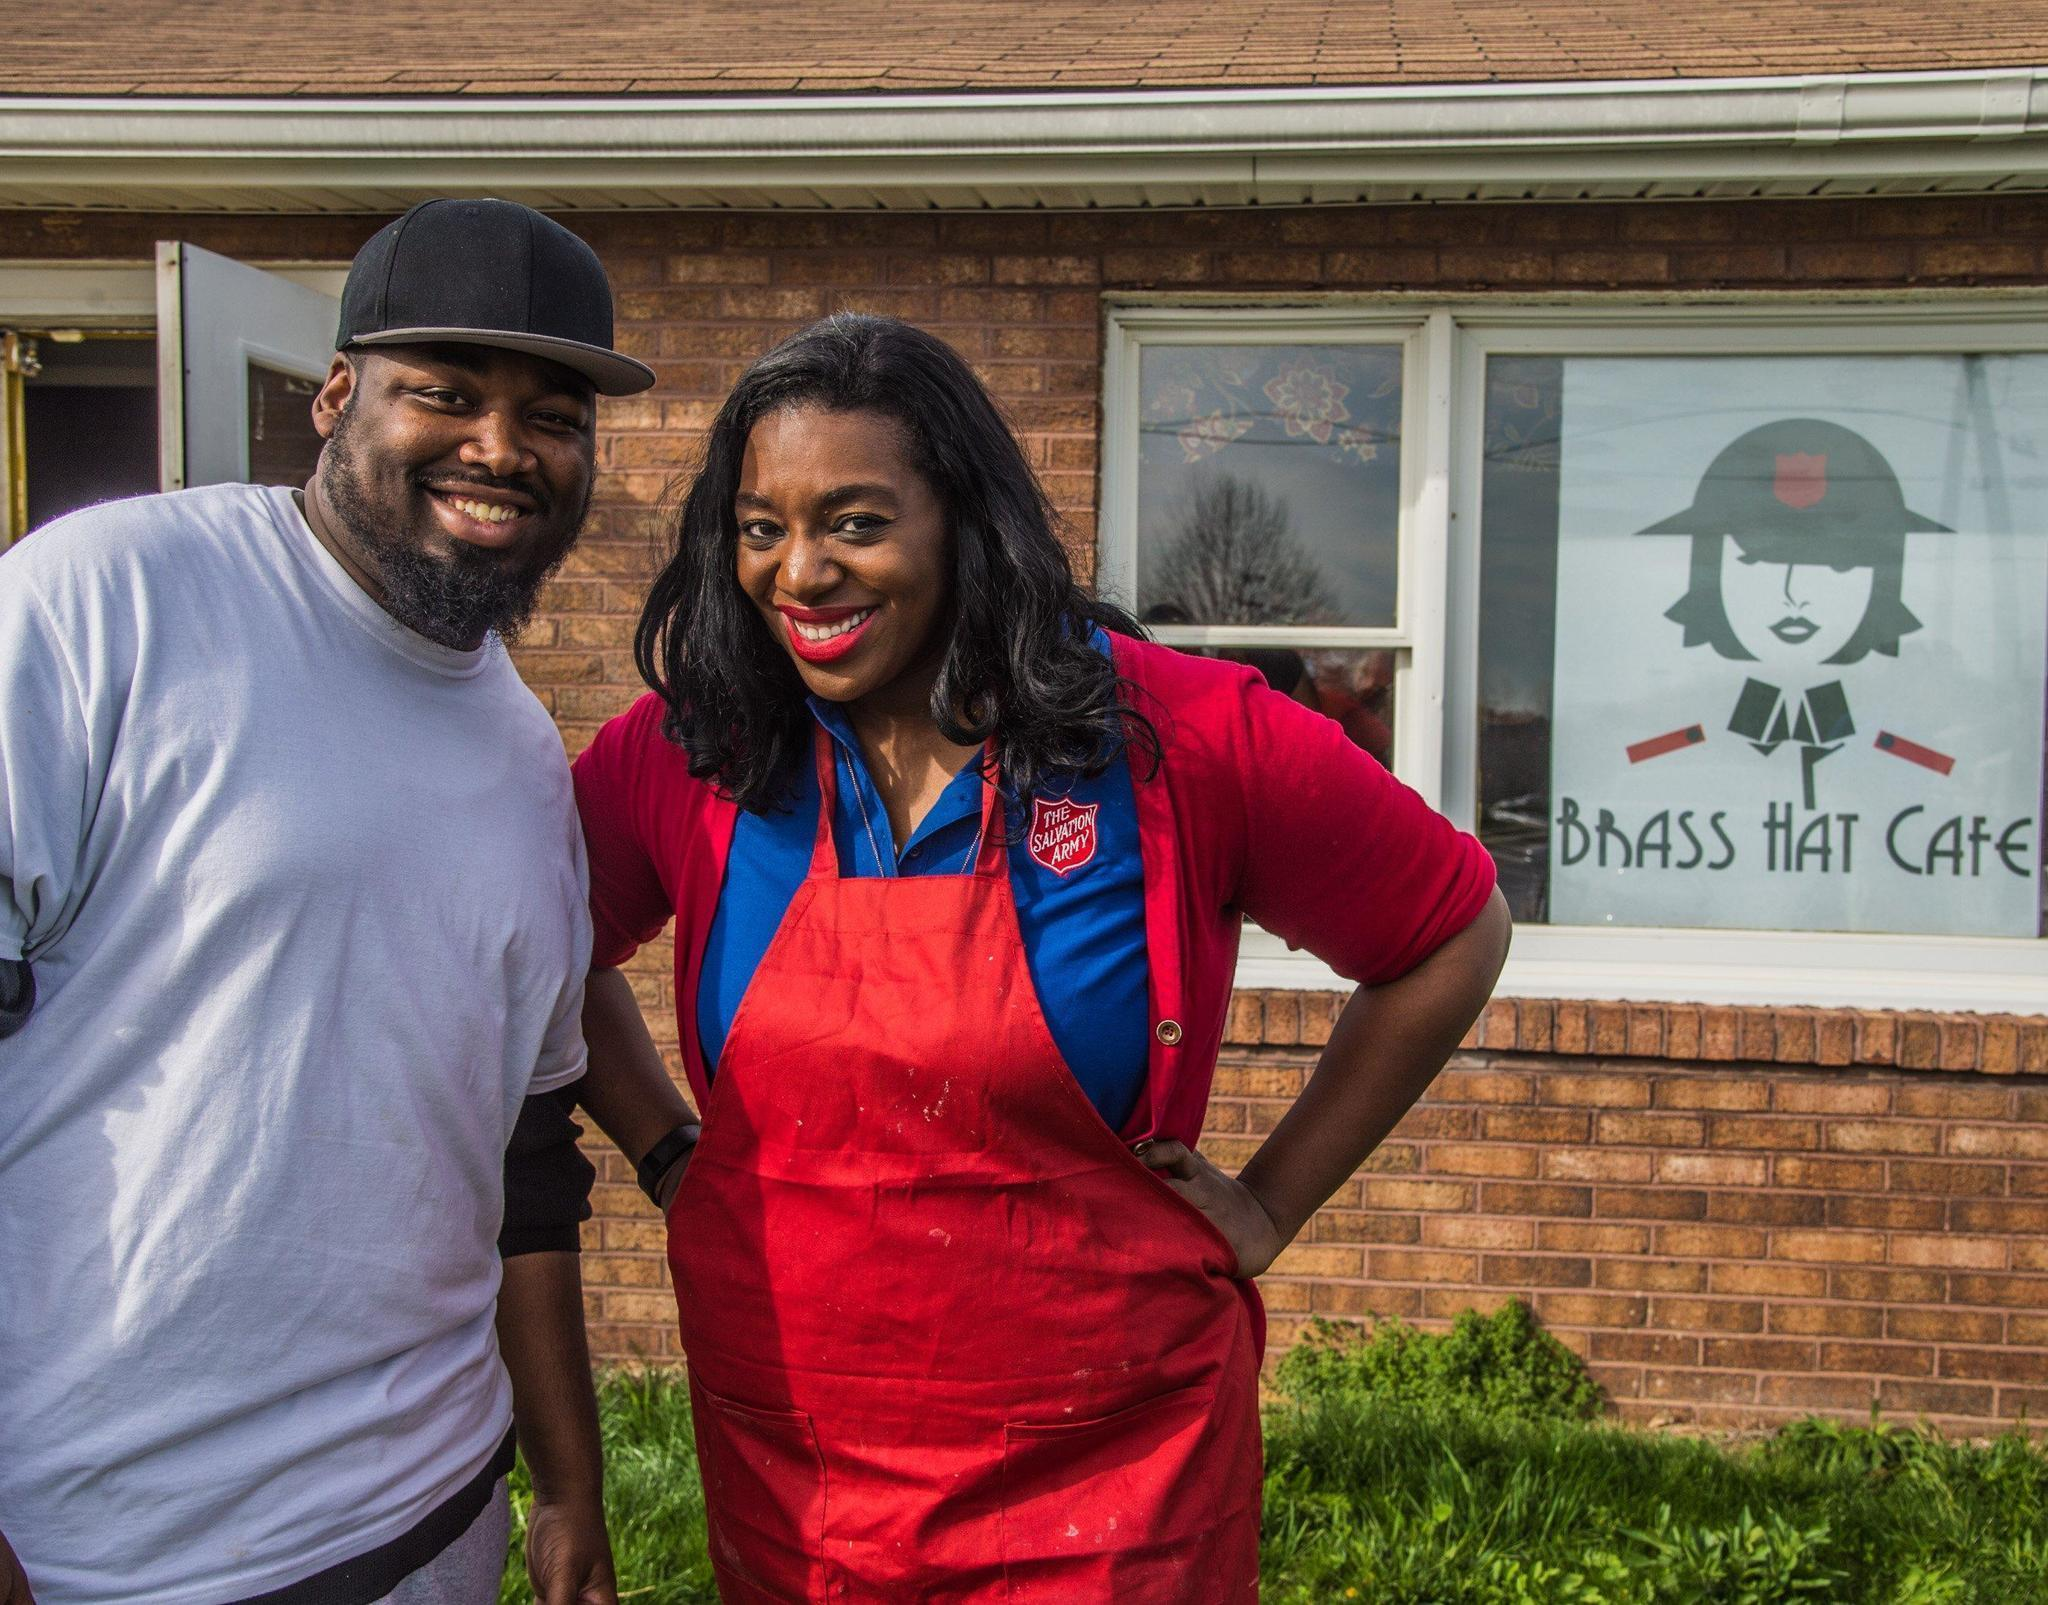 Salvation Army Brass Hat Cafe Offer Meals With Style And Respect   Carroll  County Times